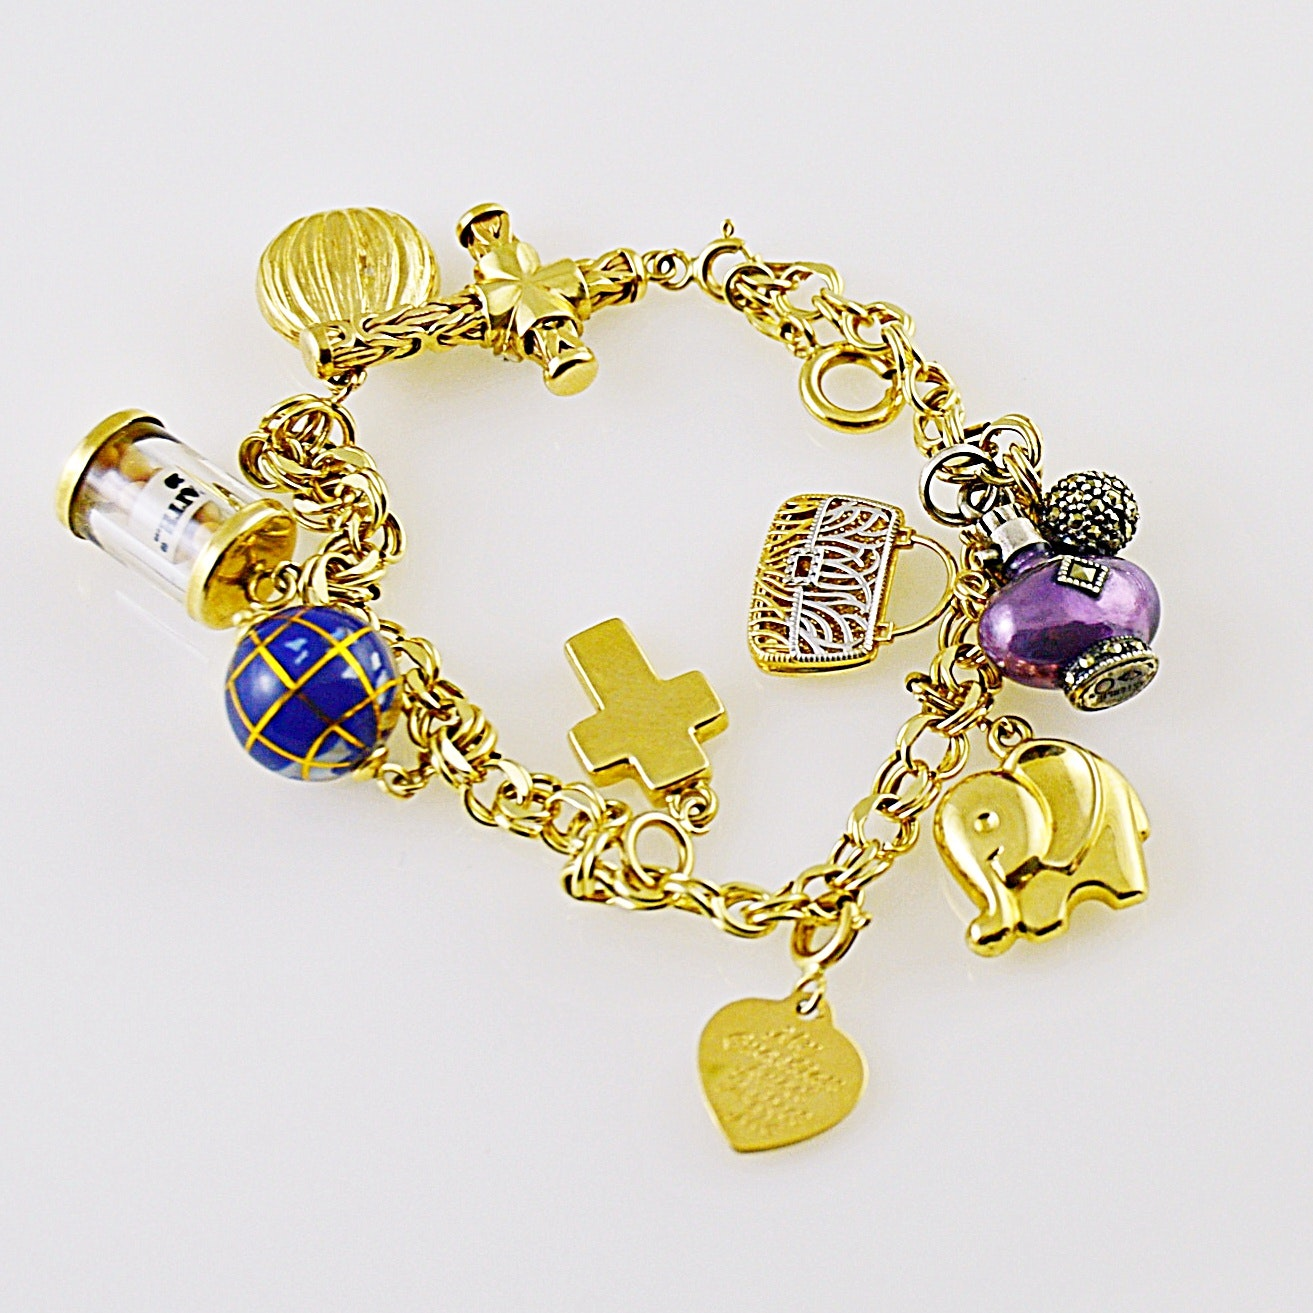 14K Yellow Gold Charm Bracelet with Eight 14K Charms, One Sterling Charm